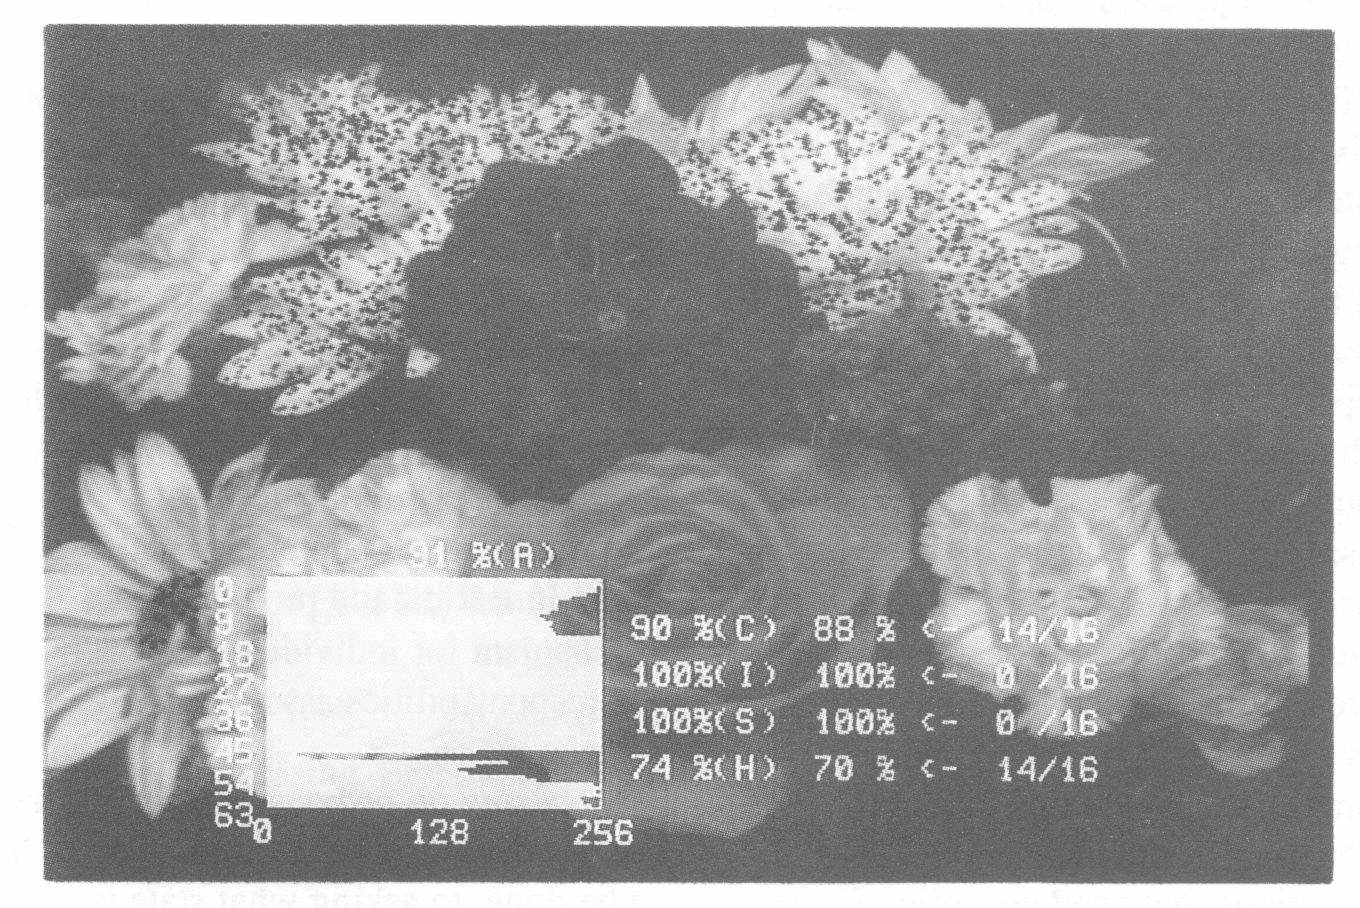 Figure 4: Flower image & responses bar chart when hue in the range 40-42 is changed to 45